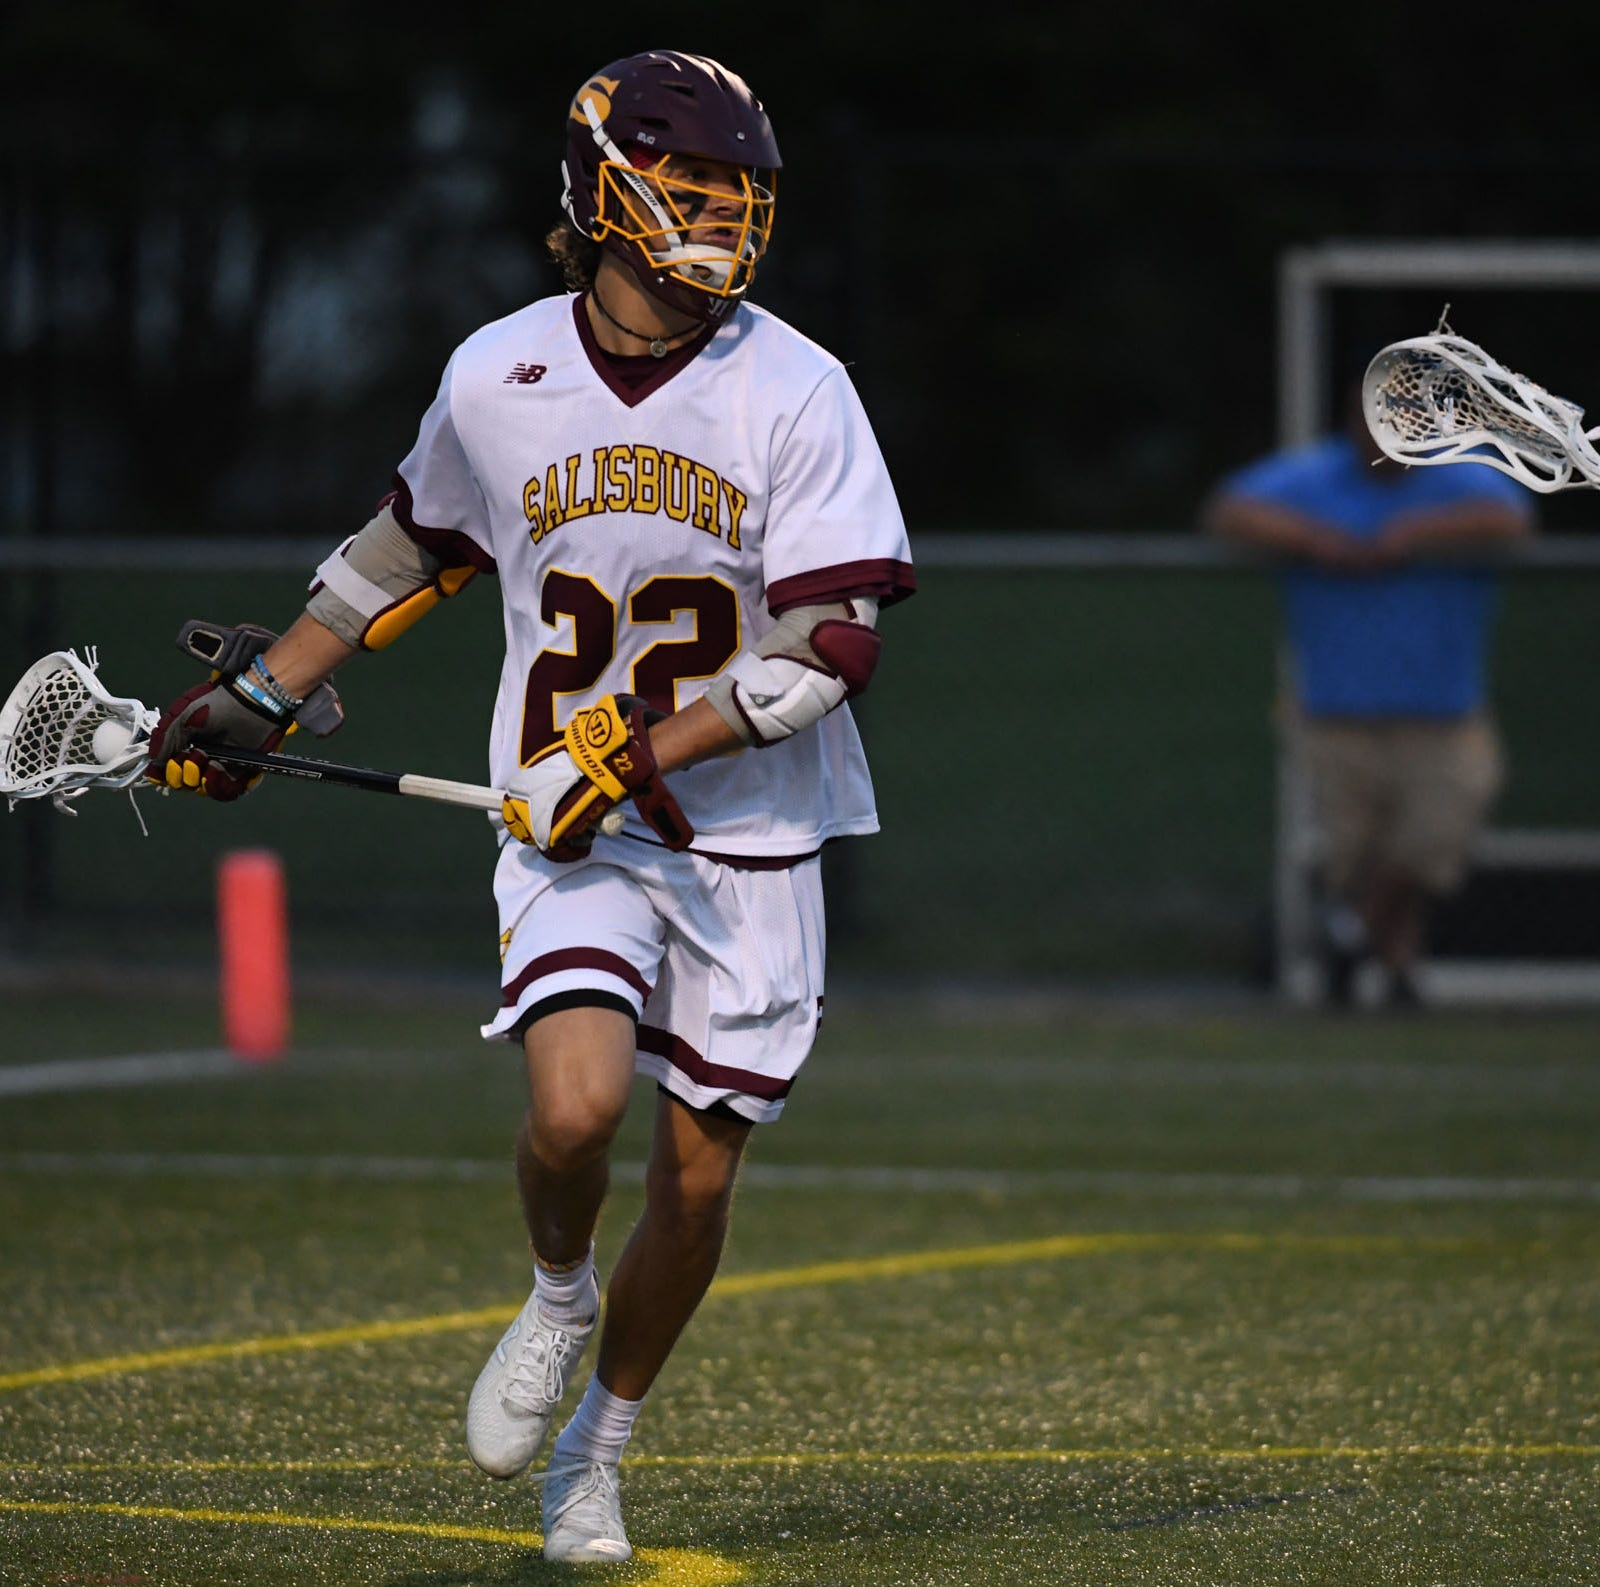 No. 1 Salisbury University men's lacrosse rolls to big win over Southern Virginia